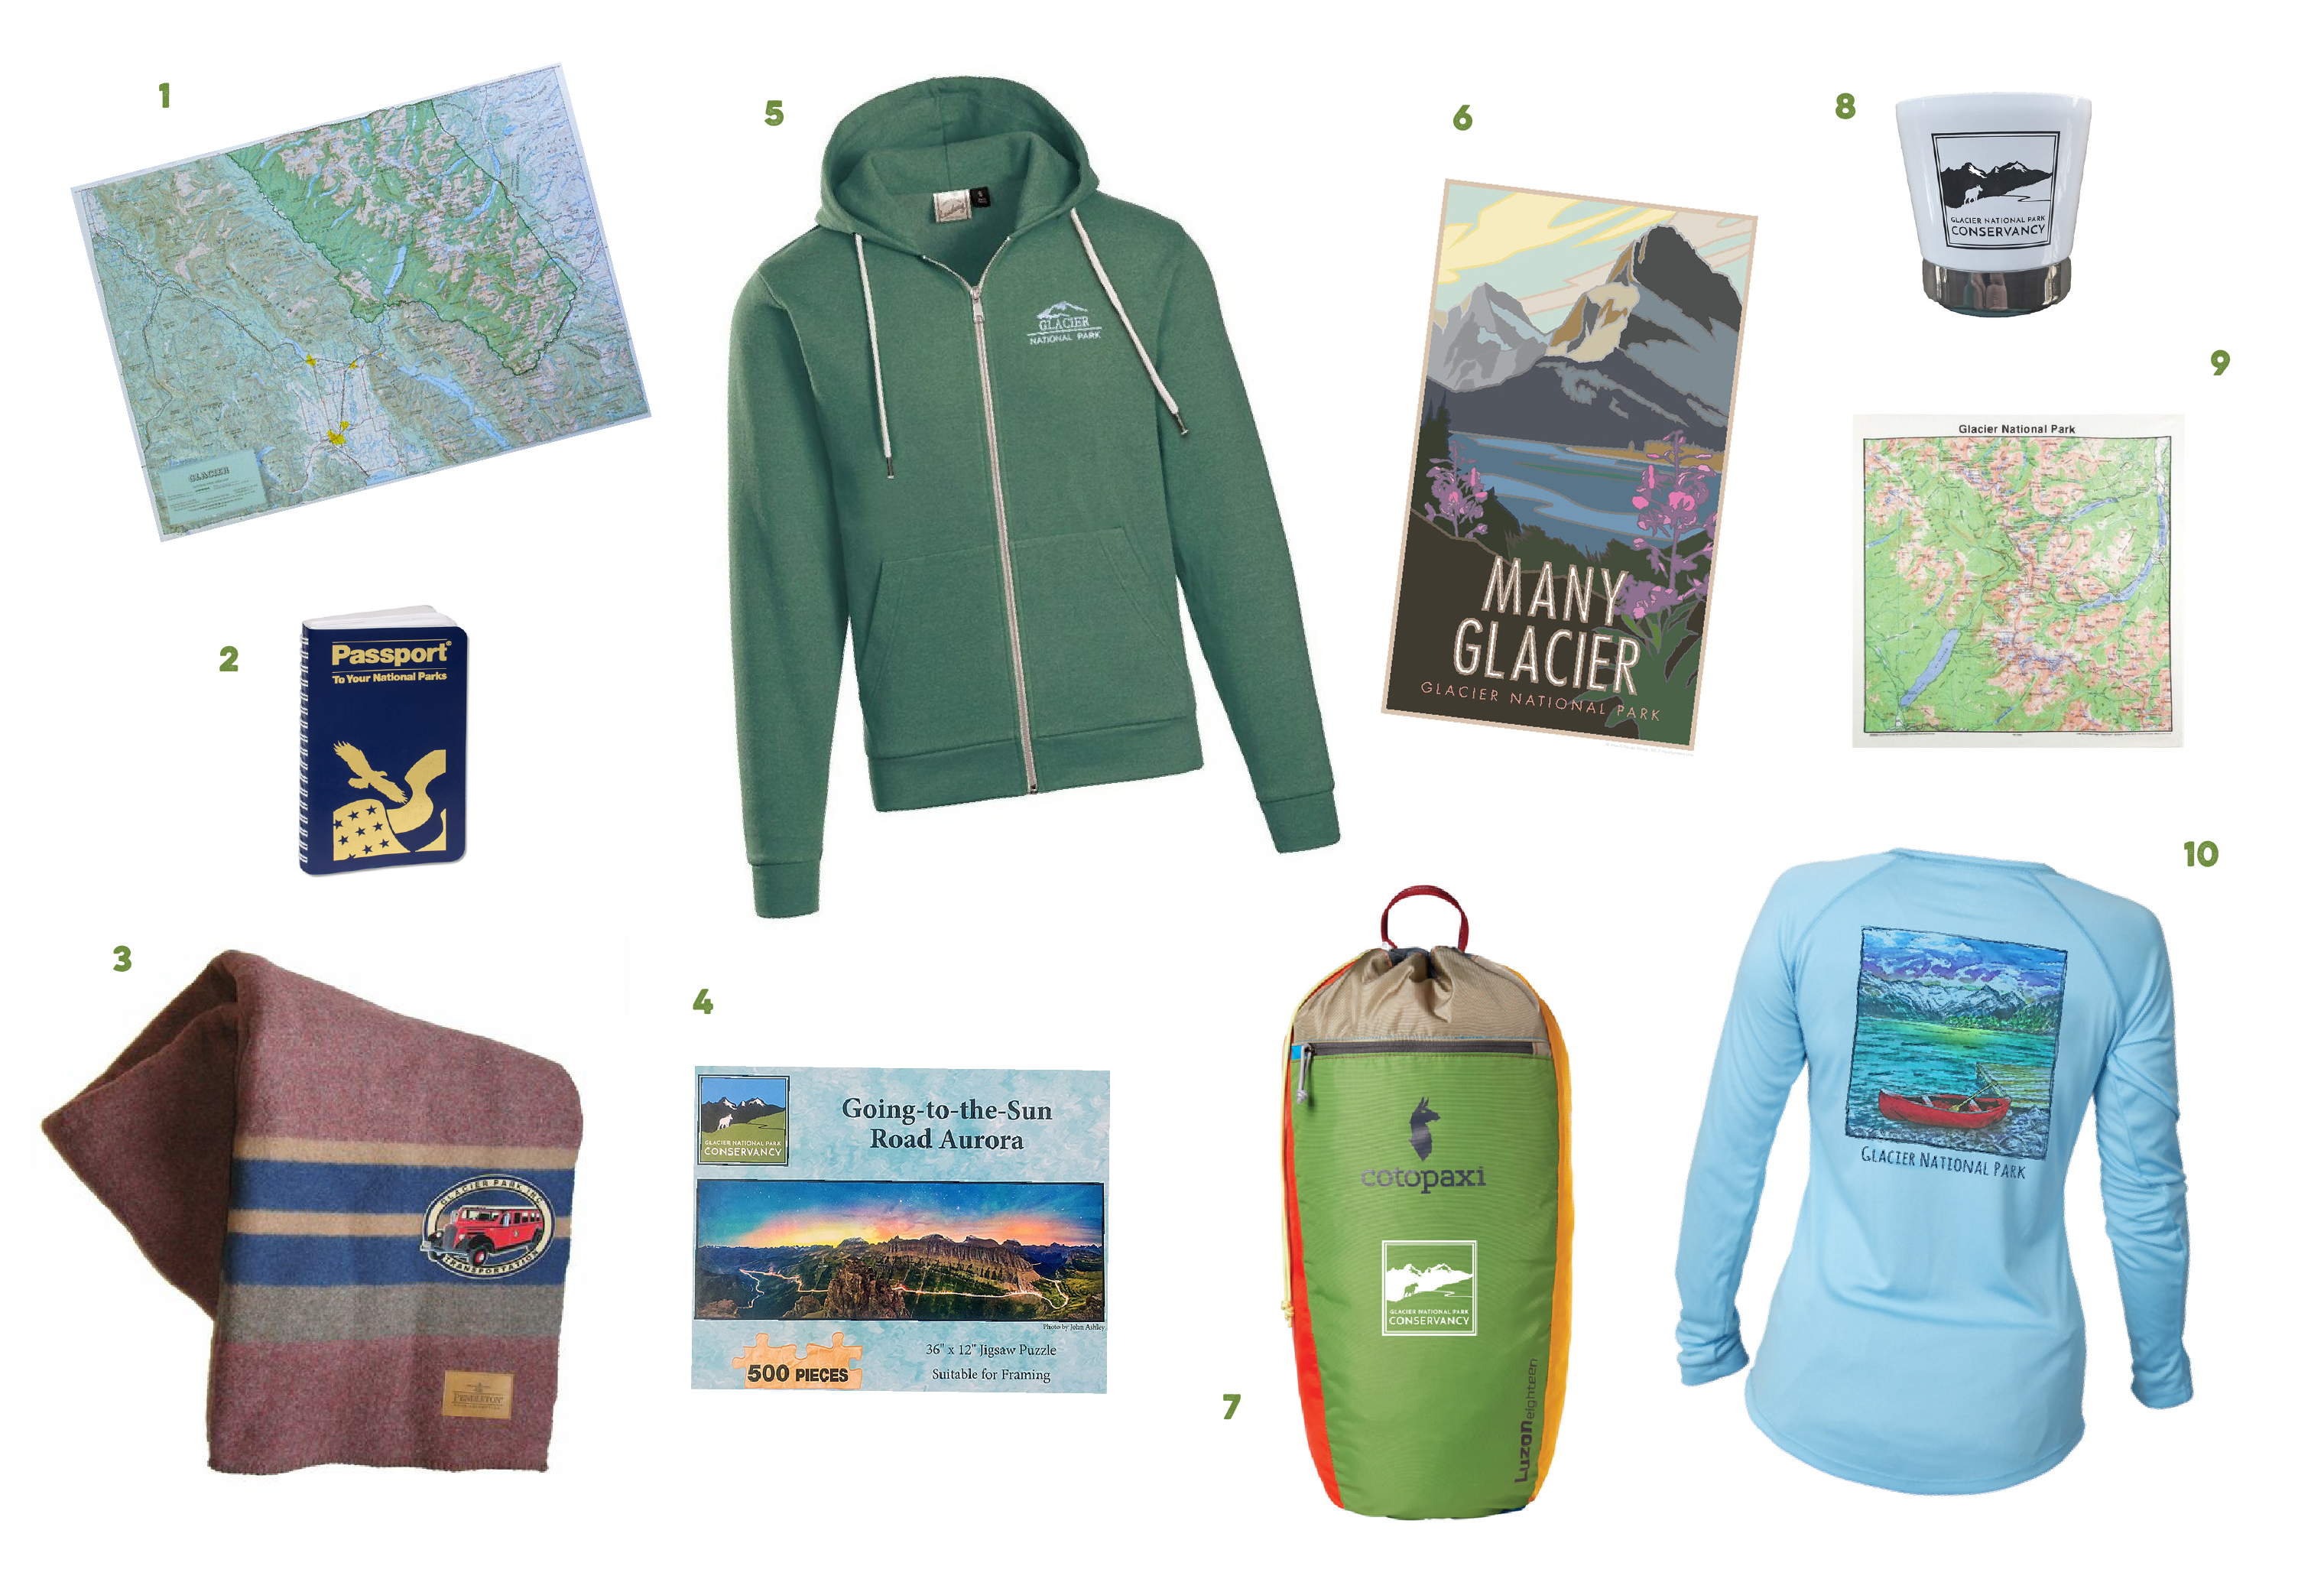 A collage featuring a variety of products supporting Glacier National Park including a zip hoodie jacket, long sleeve shirt, striped blanket, map products, and more